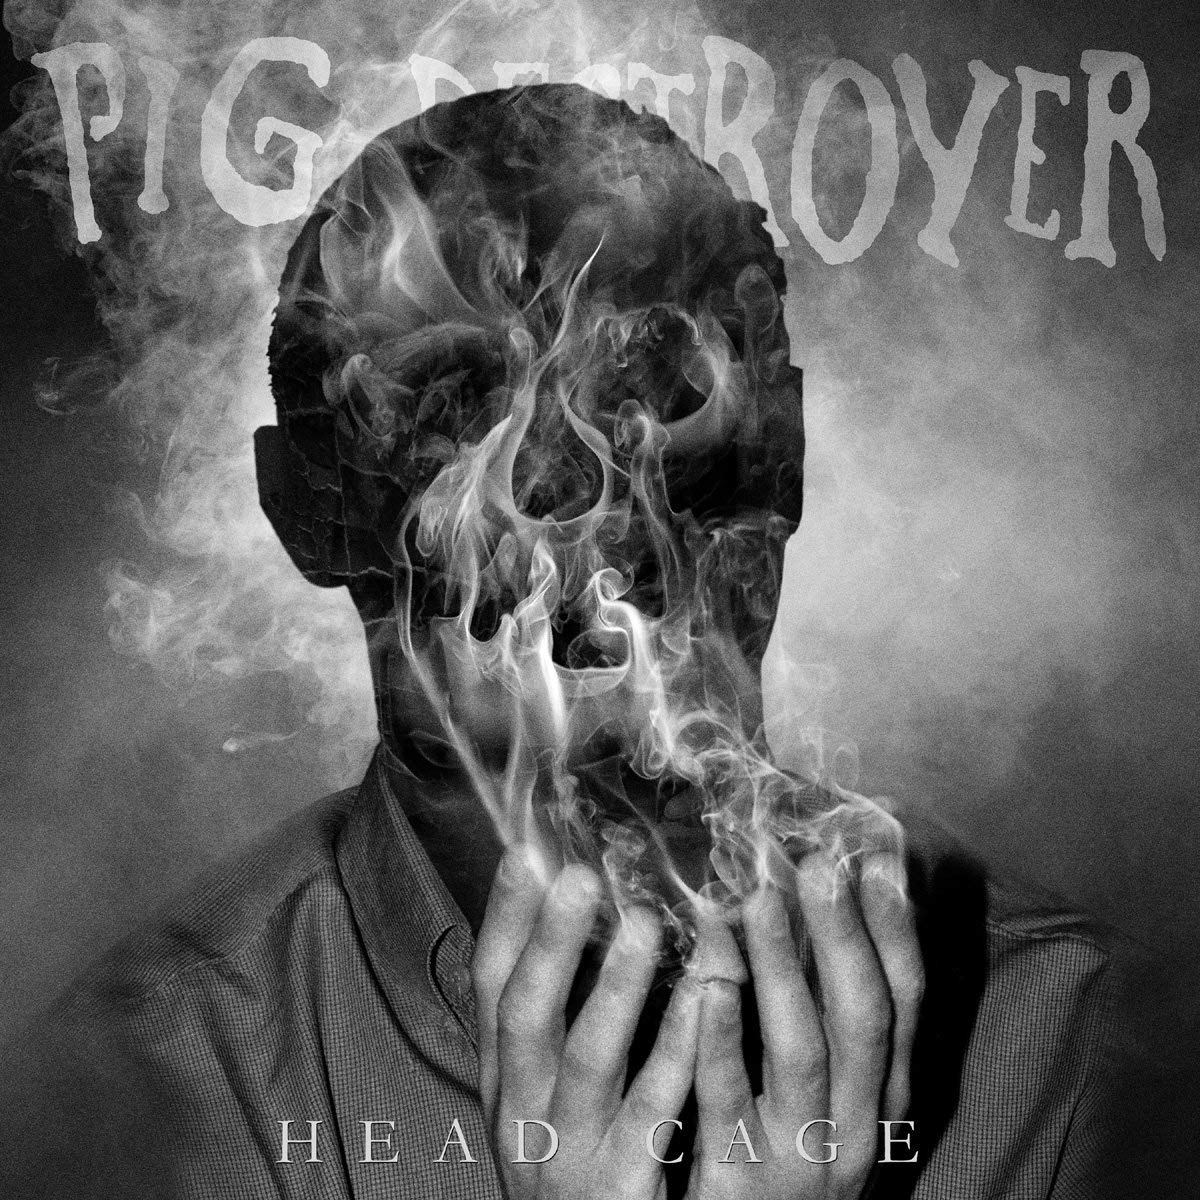 pig-destroyer-head-cage-relapse.jpg